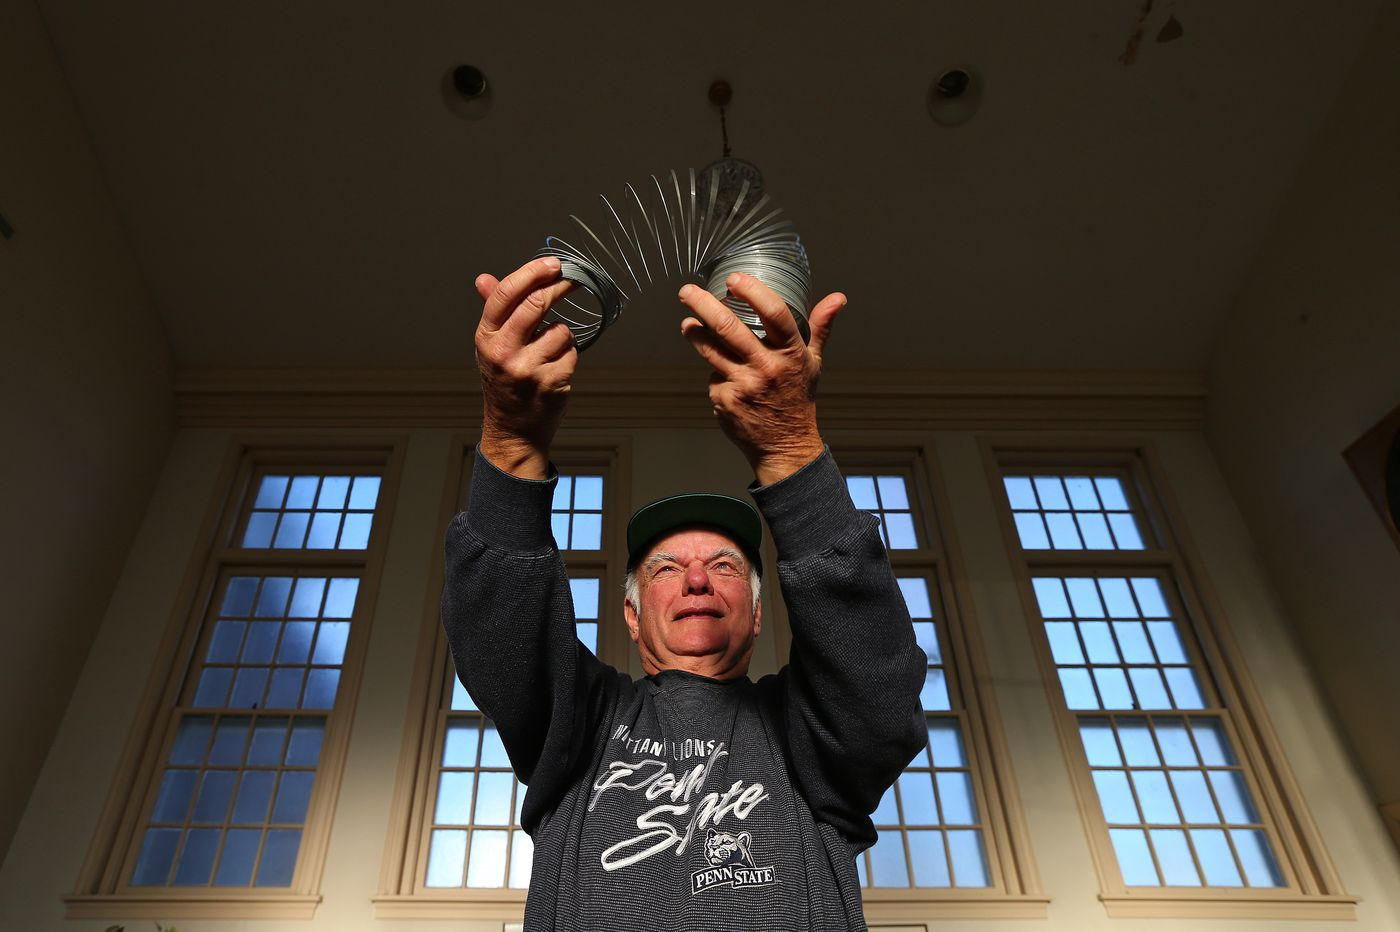 It's Slinky, it's Slinky! It's such a wonderful toy - should it be Pa.'s state toy? It's one man's mission